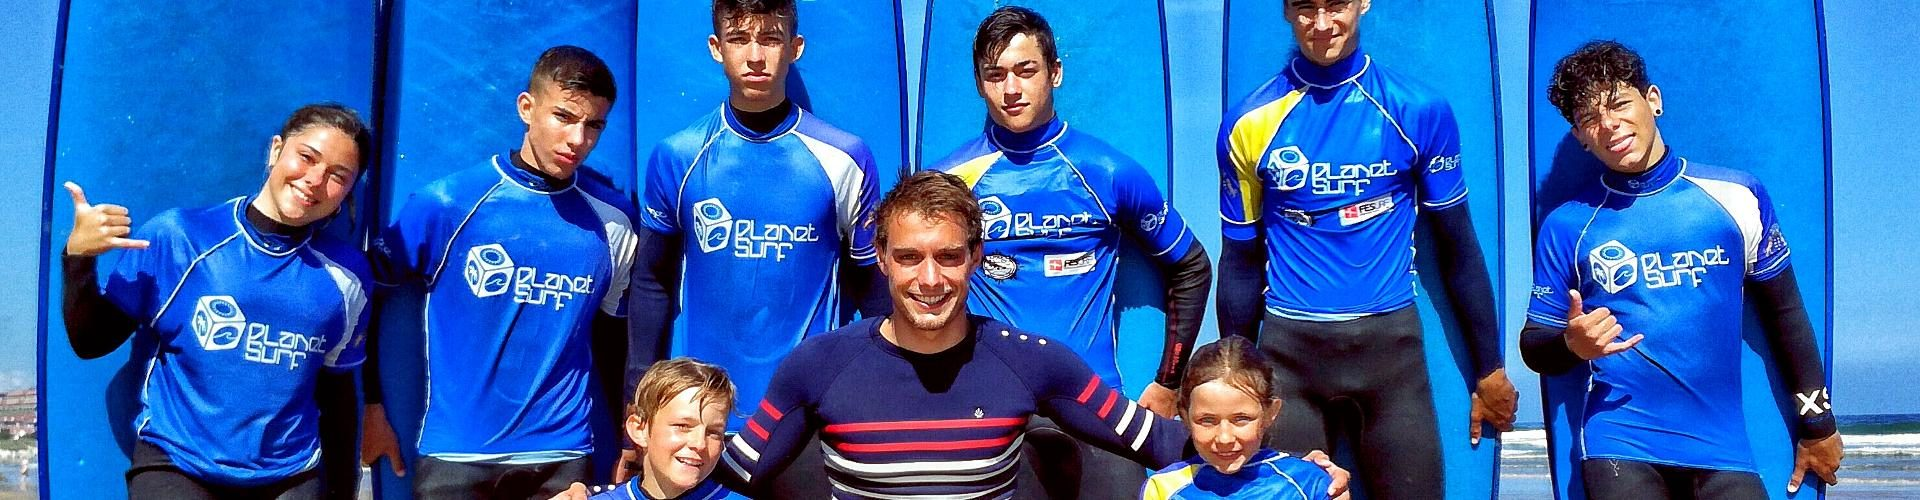 Surf lessons for juniors in Spain